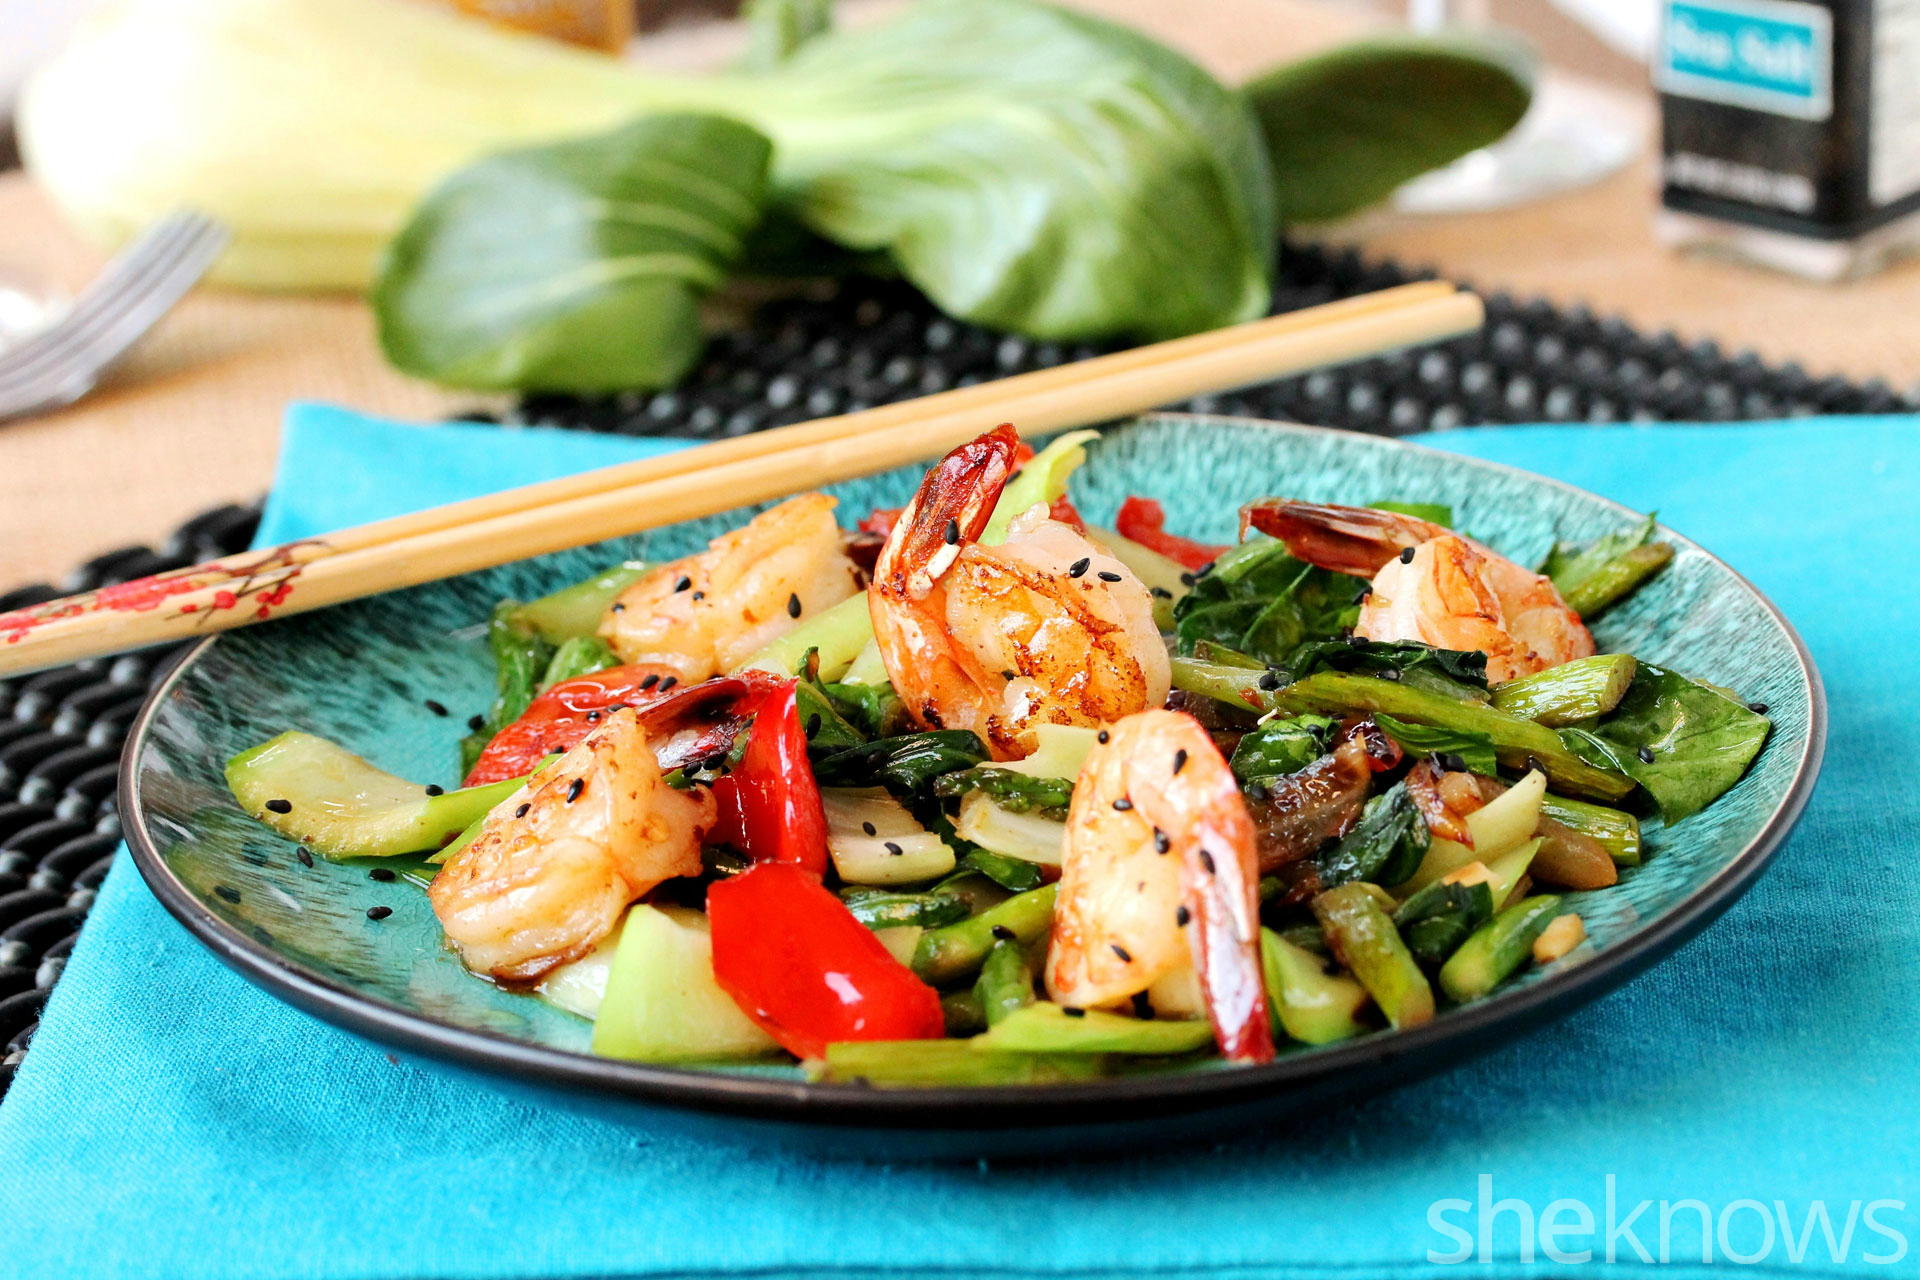 2 Bok choy with shrimp and sesame oil